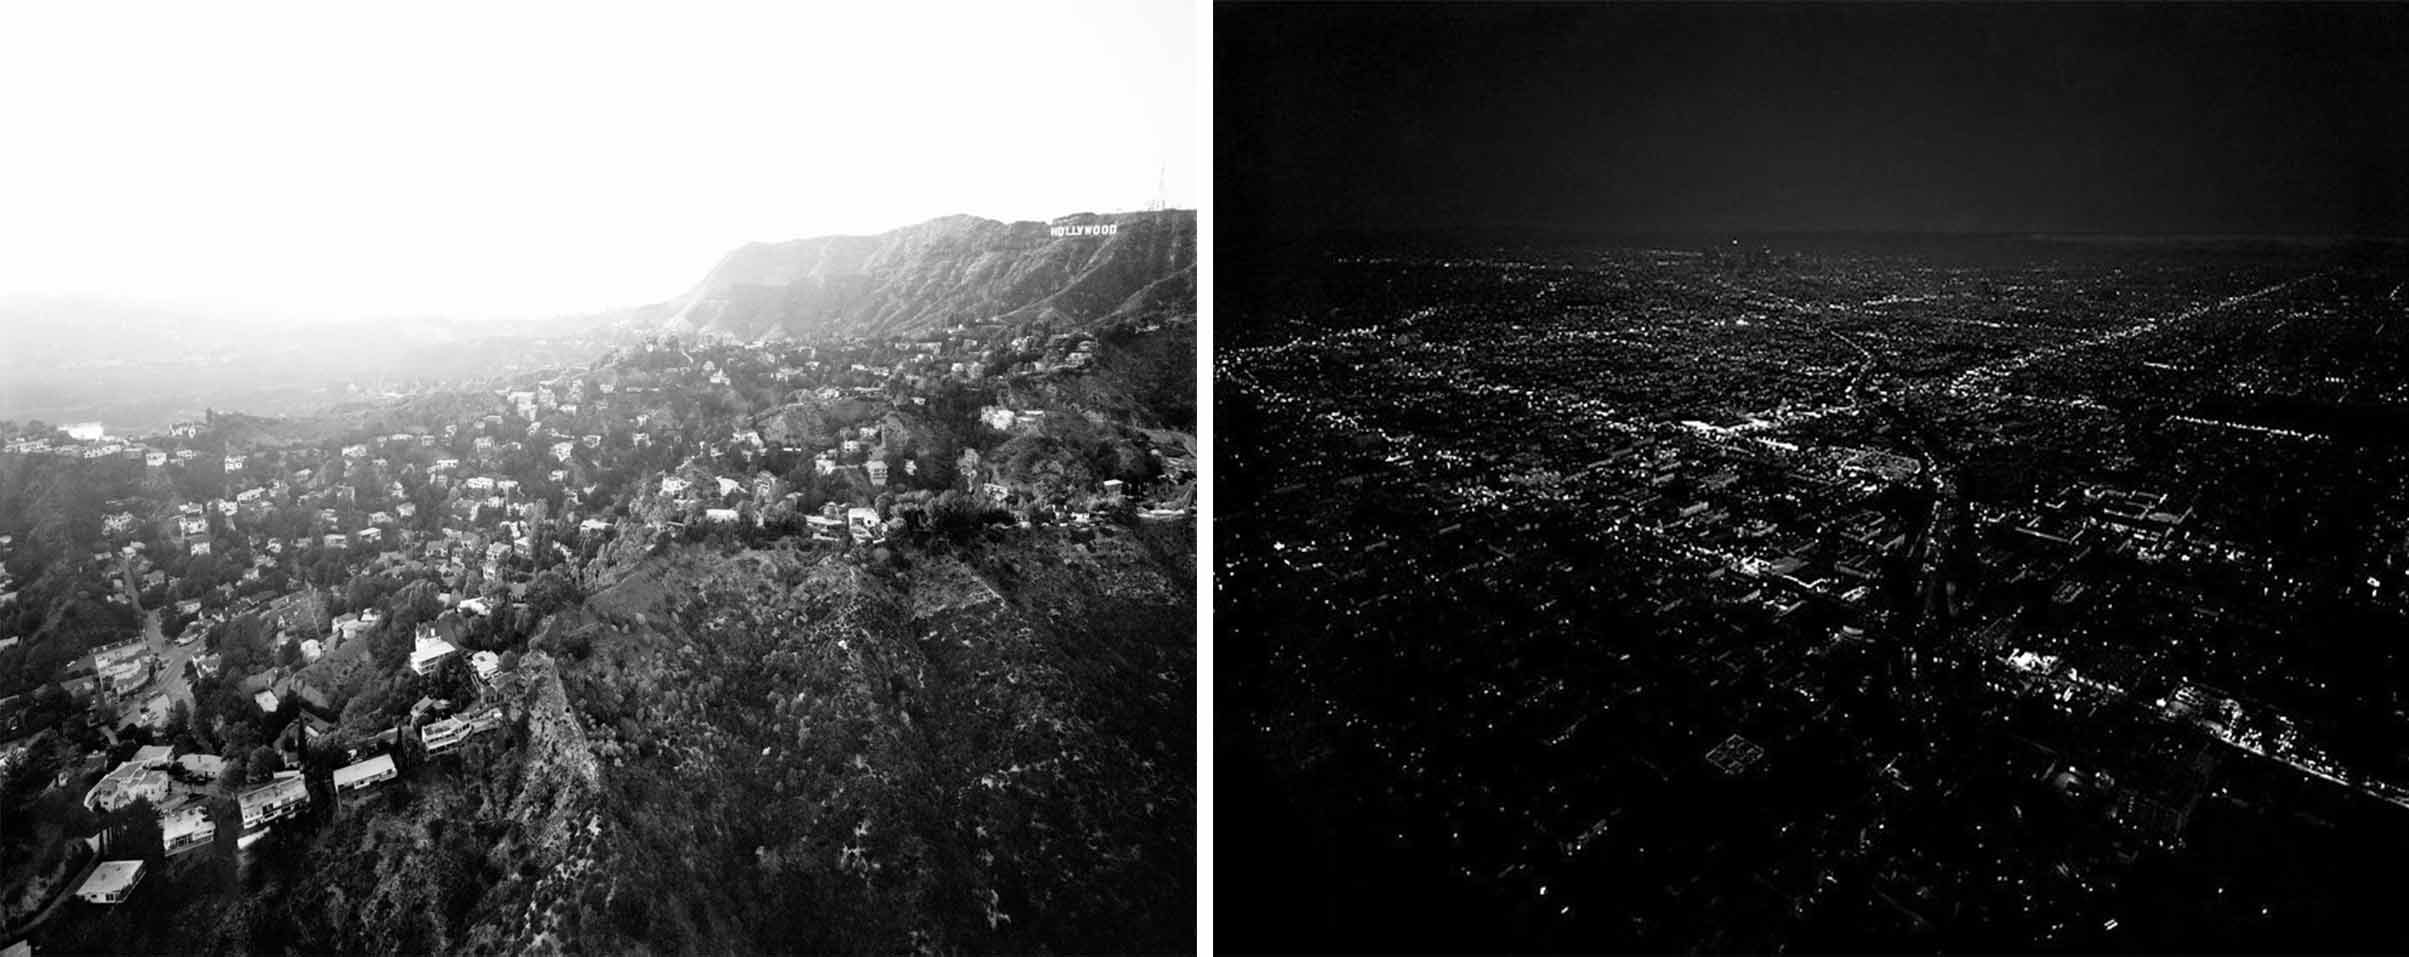 """Left: """"Hollywood Hills From Griffith Park, Beachwood Drive and Hollywood Reservoir at Left, CA. Michael Light"""". 2004. Right: """"Untitled/Downtown Dusk"""", Michael Light. 2005."""